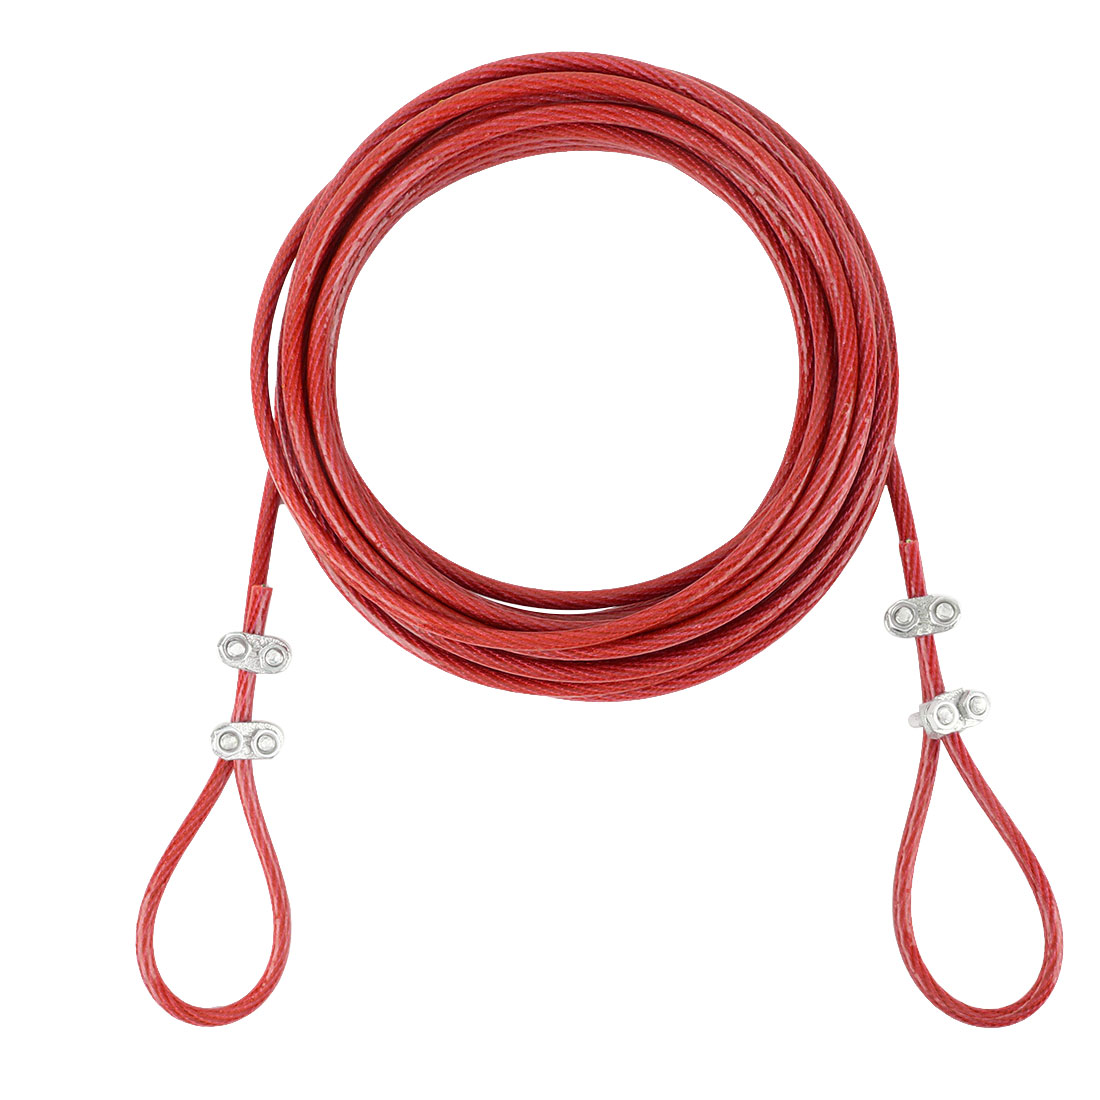 Steel Cored Clothesline Hold up Heavy Weight Nylon Wrapped Red 8 Meters Length